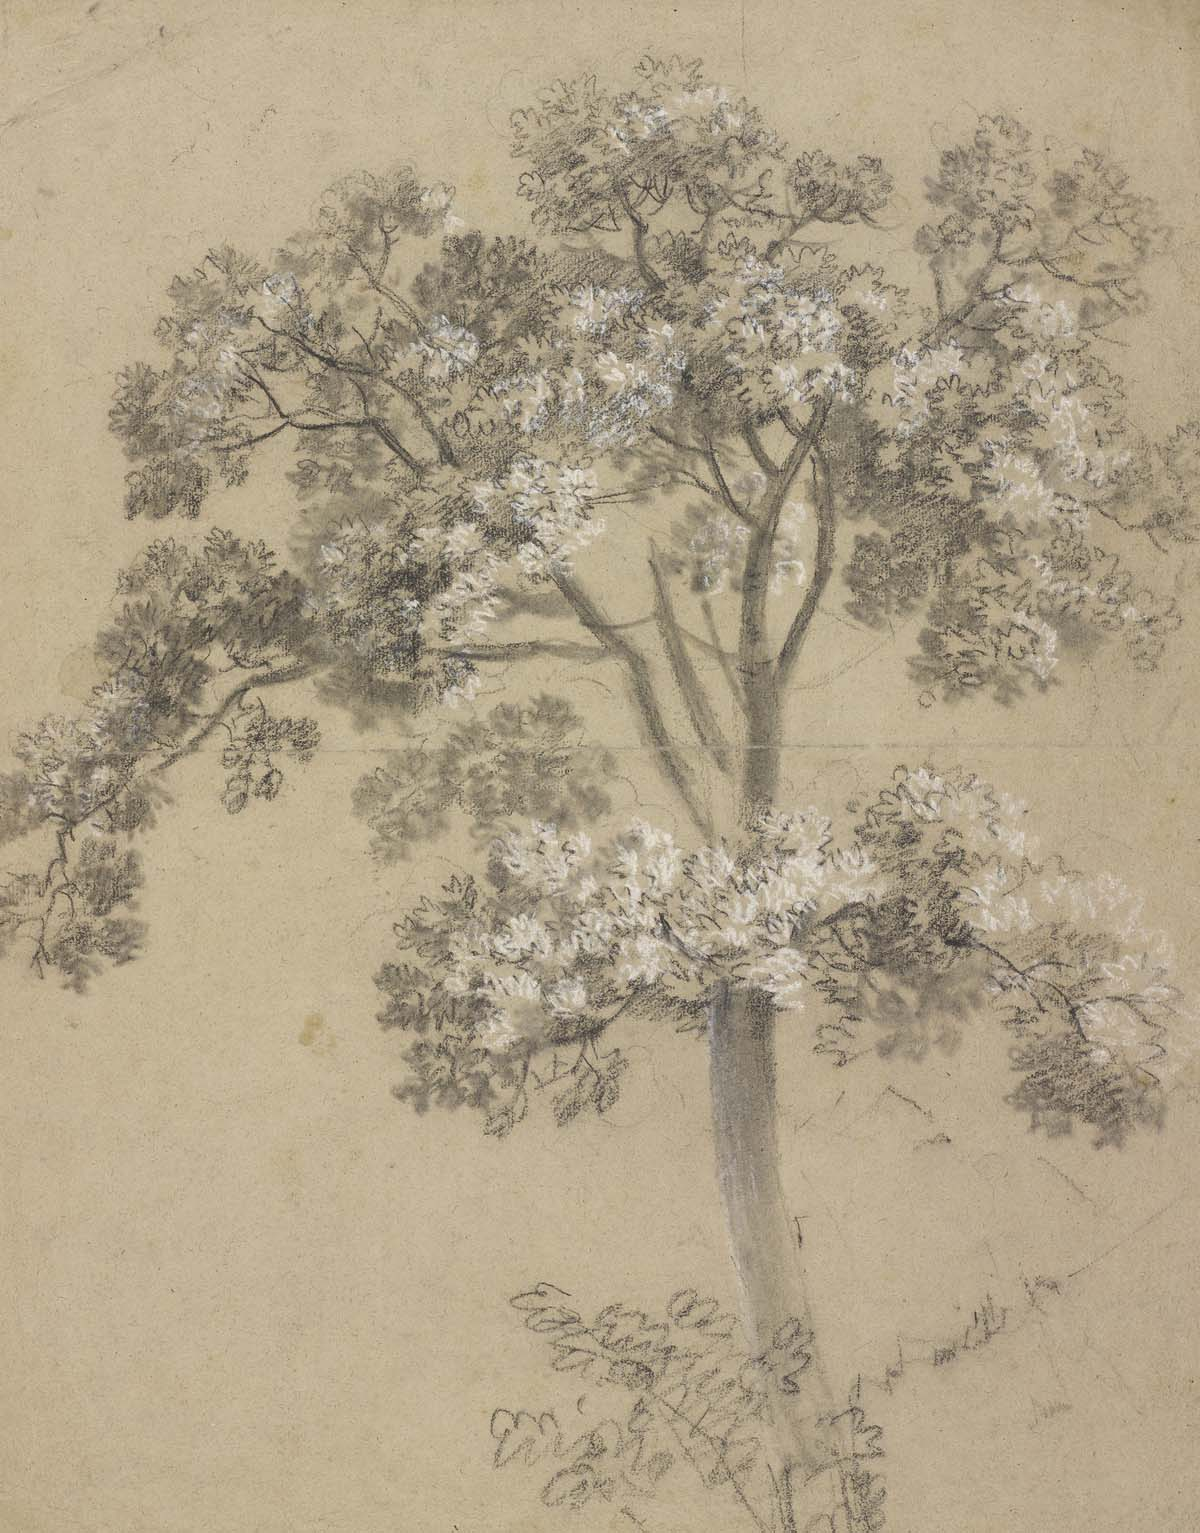 pencil and charcoal sketch of a tree